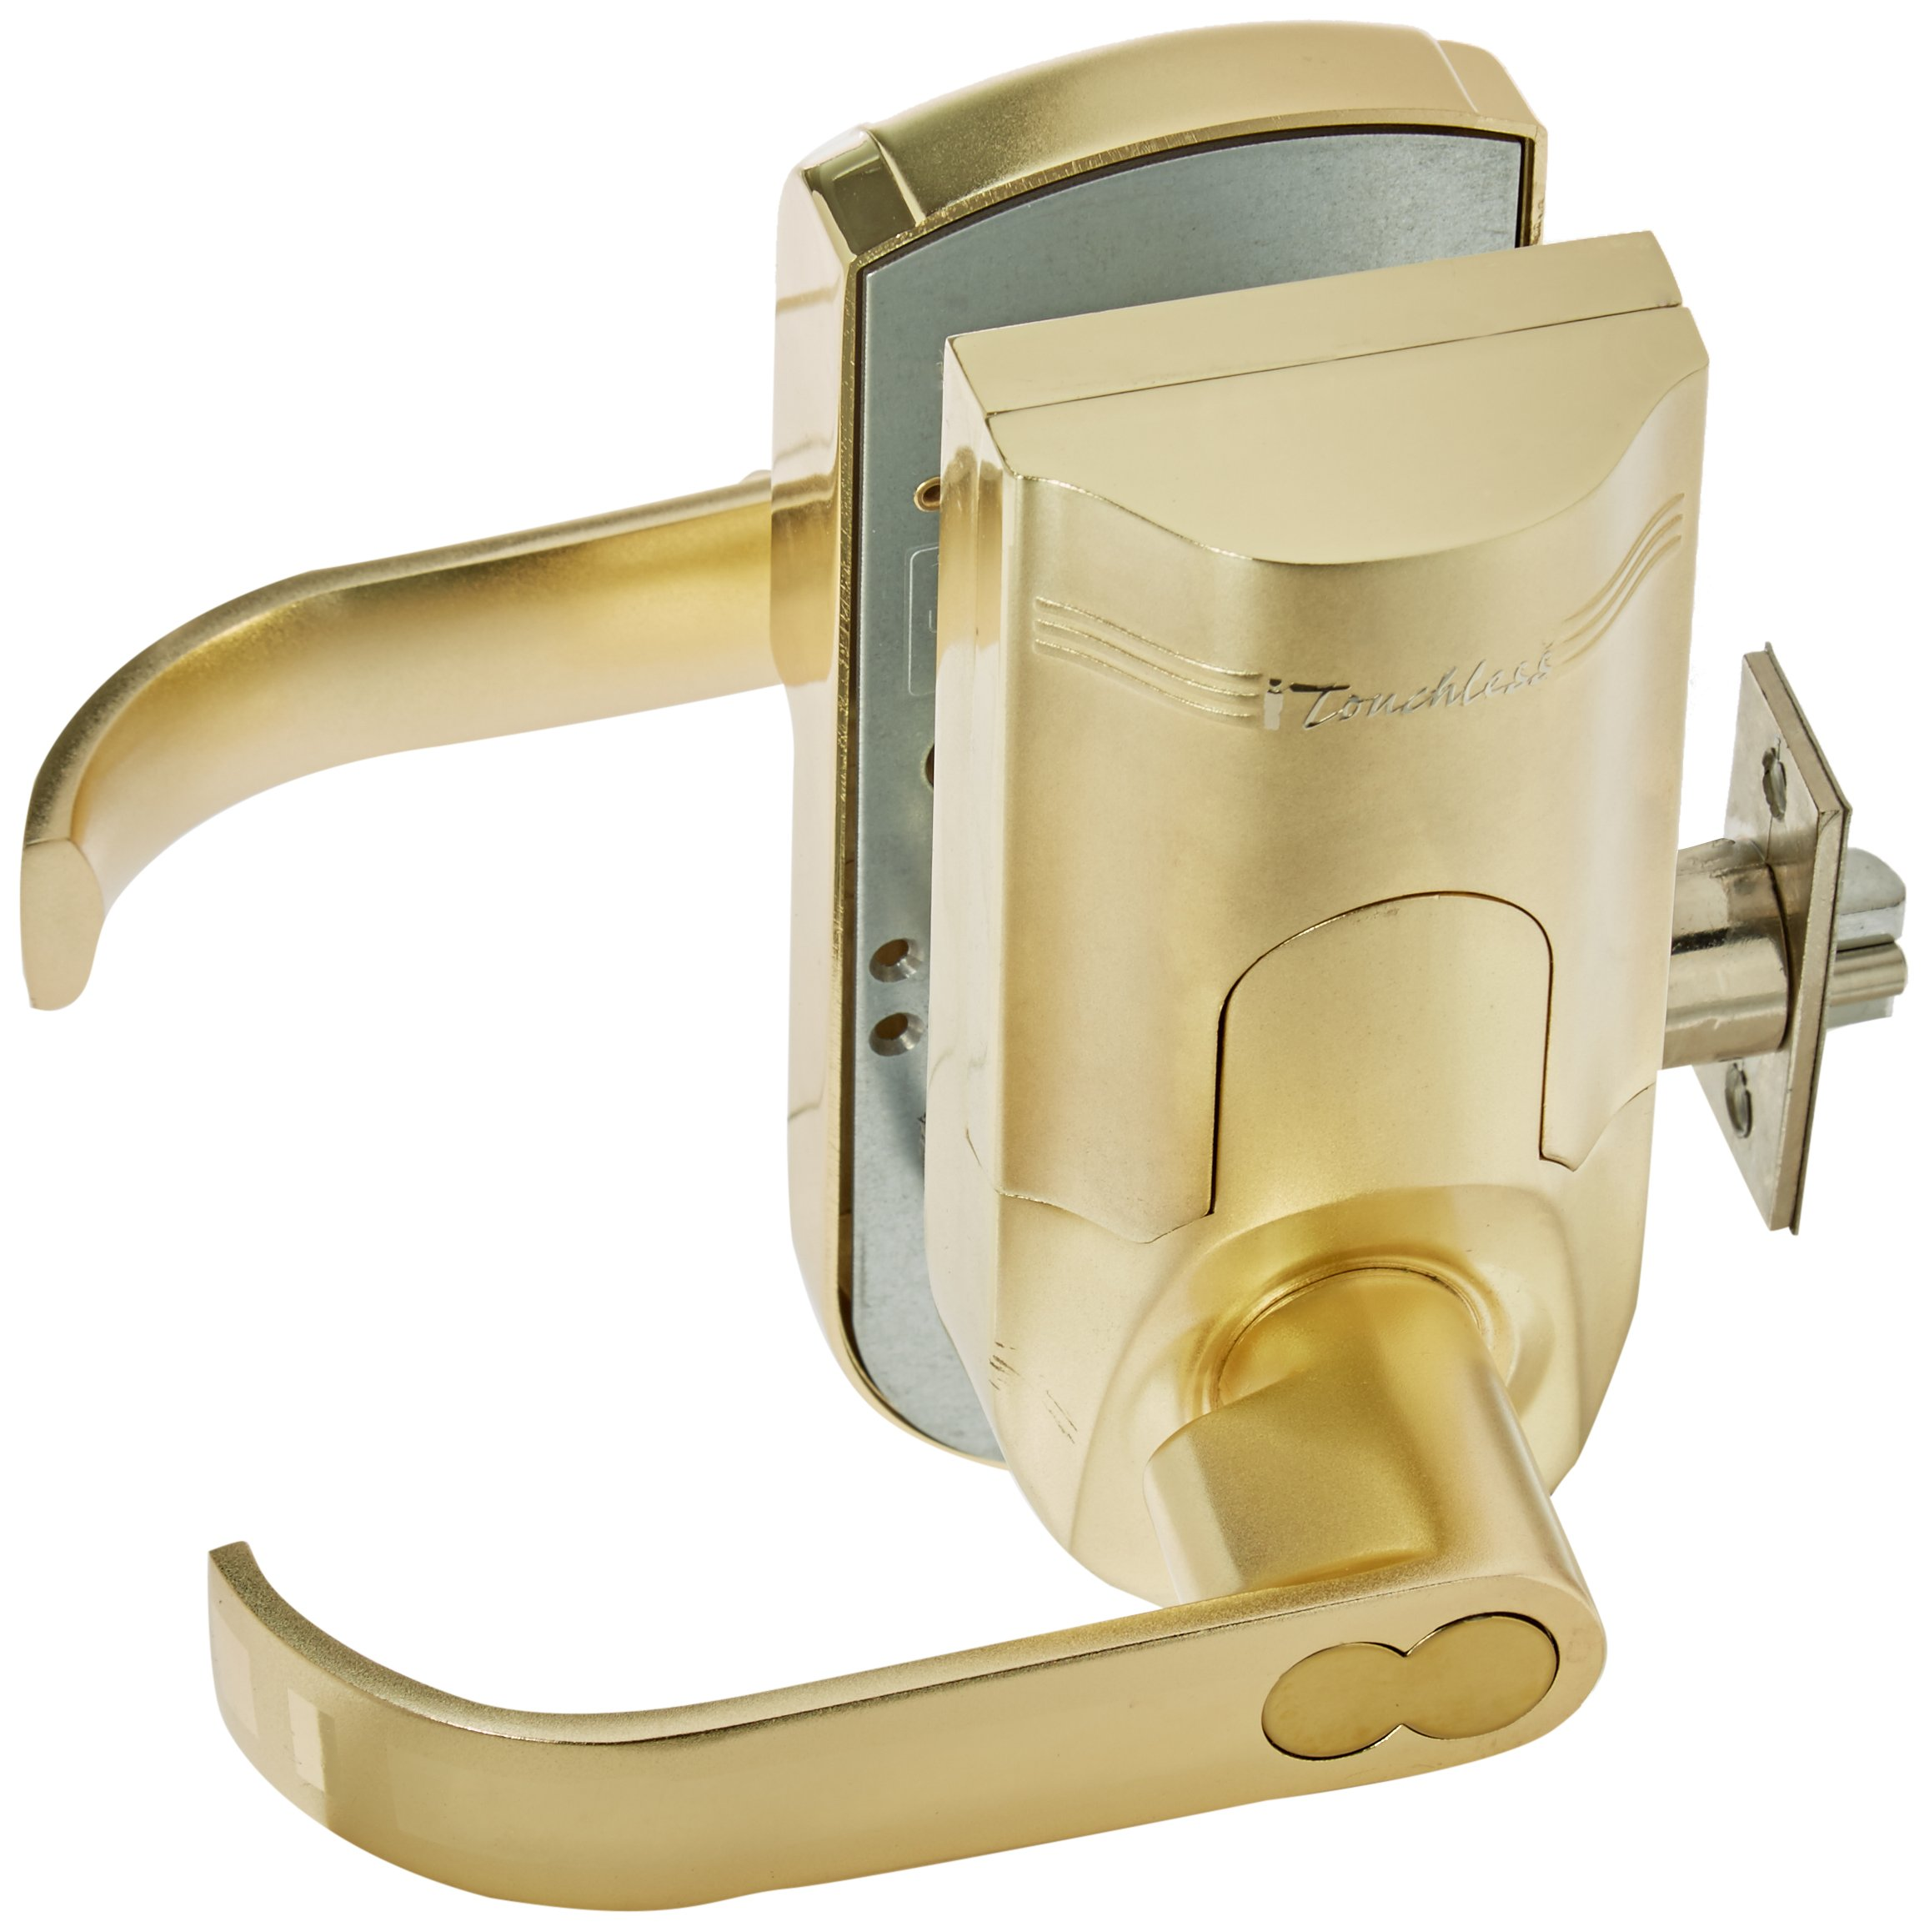 iTouchless Bio-Matic Fingerprint Door Lock, Left Handle, Gold